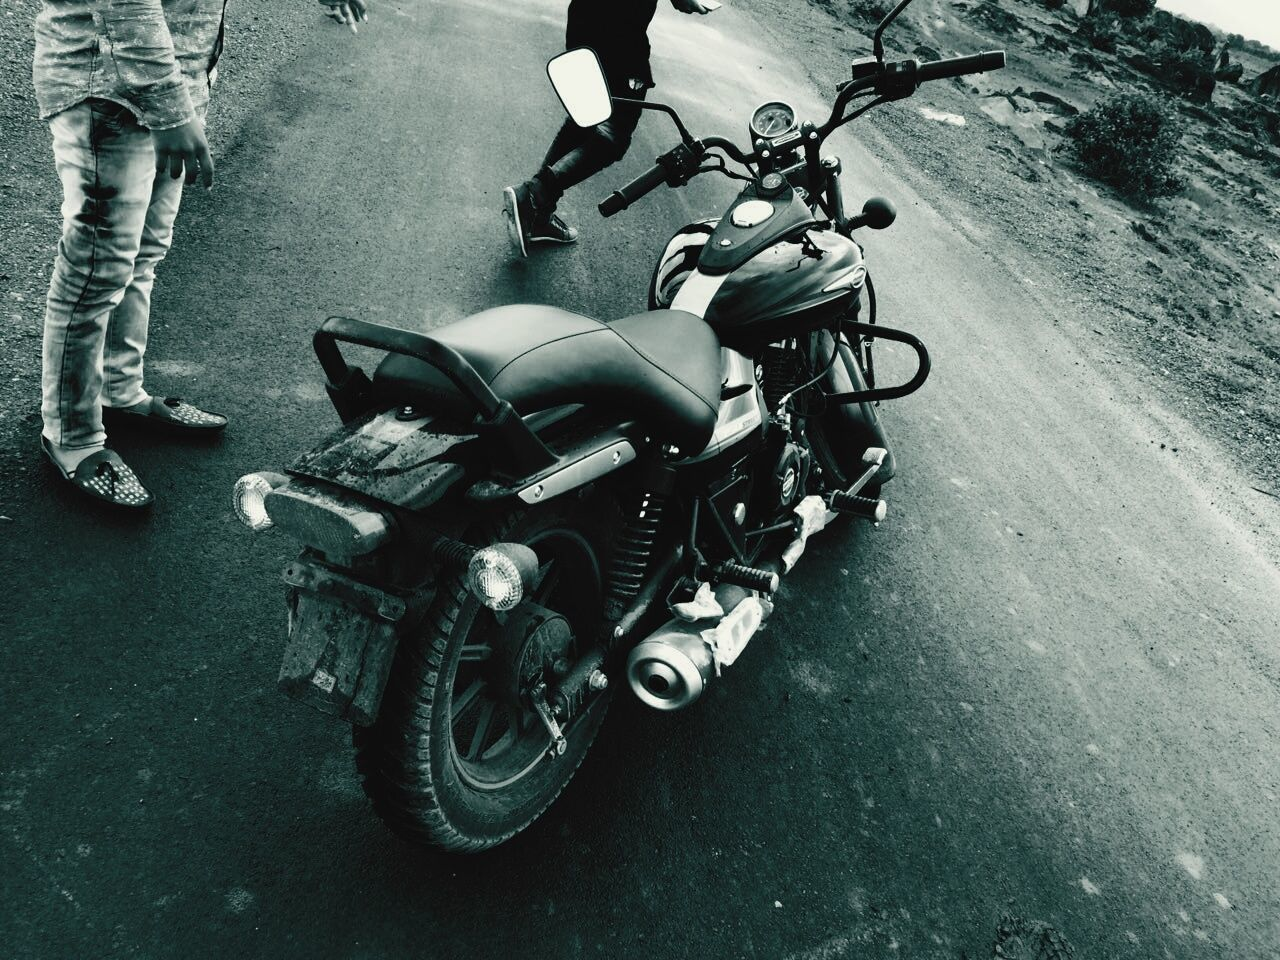 transportation, motorcycle, land vehicle, high angle view, street, mode of transport, outdoors, day, no people, scooter